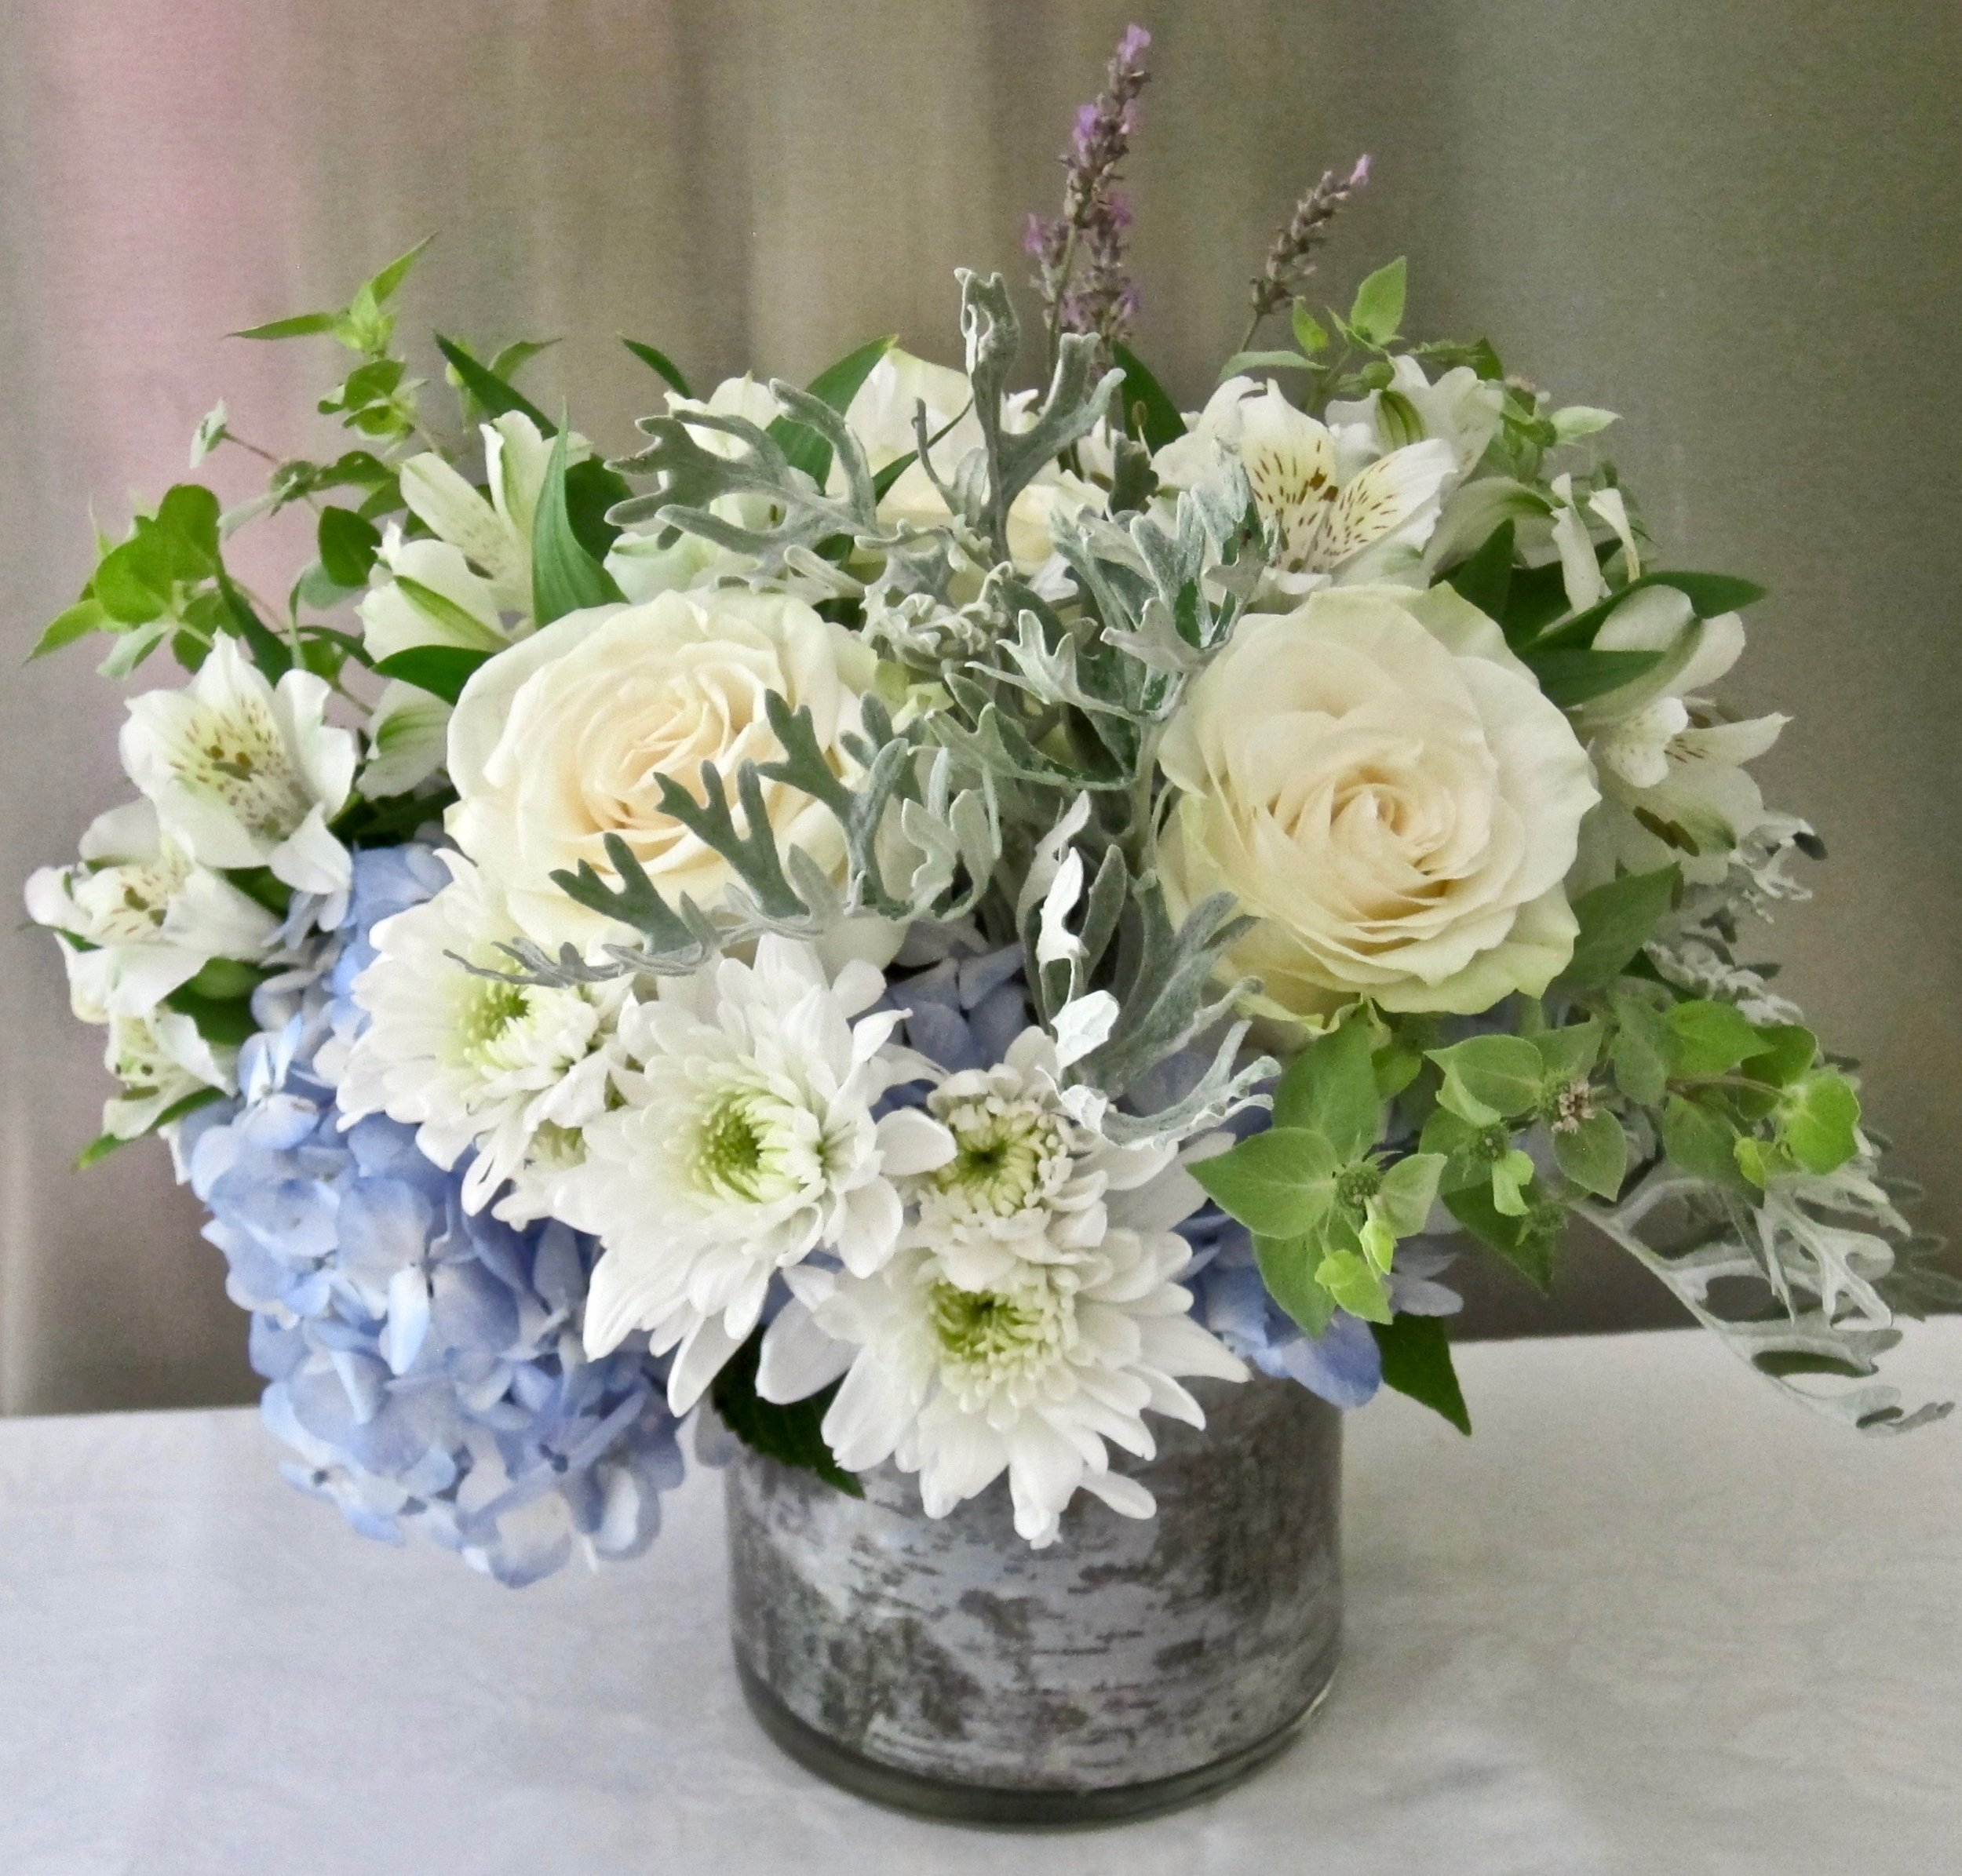 TABLETOP CENTERPIECE  White roses, mums, alstroemeria in a bed of blue or green hydrangeas, 10 inches high and wide, $75.